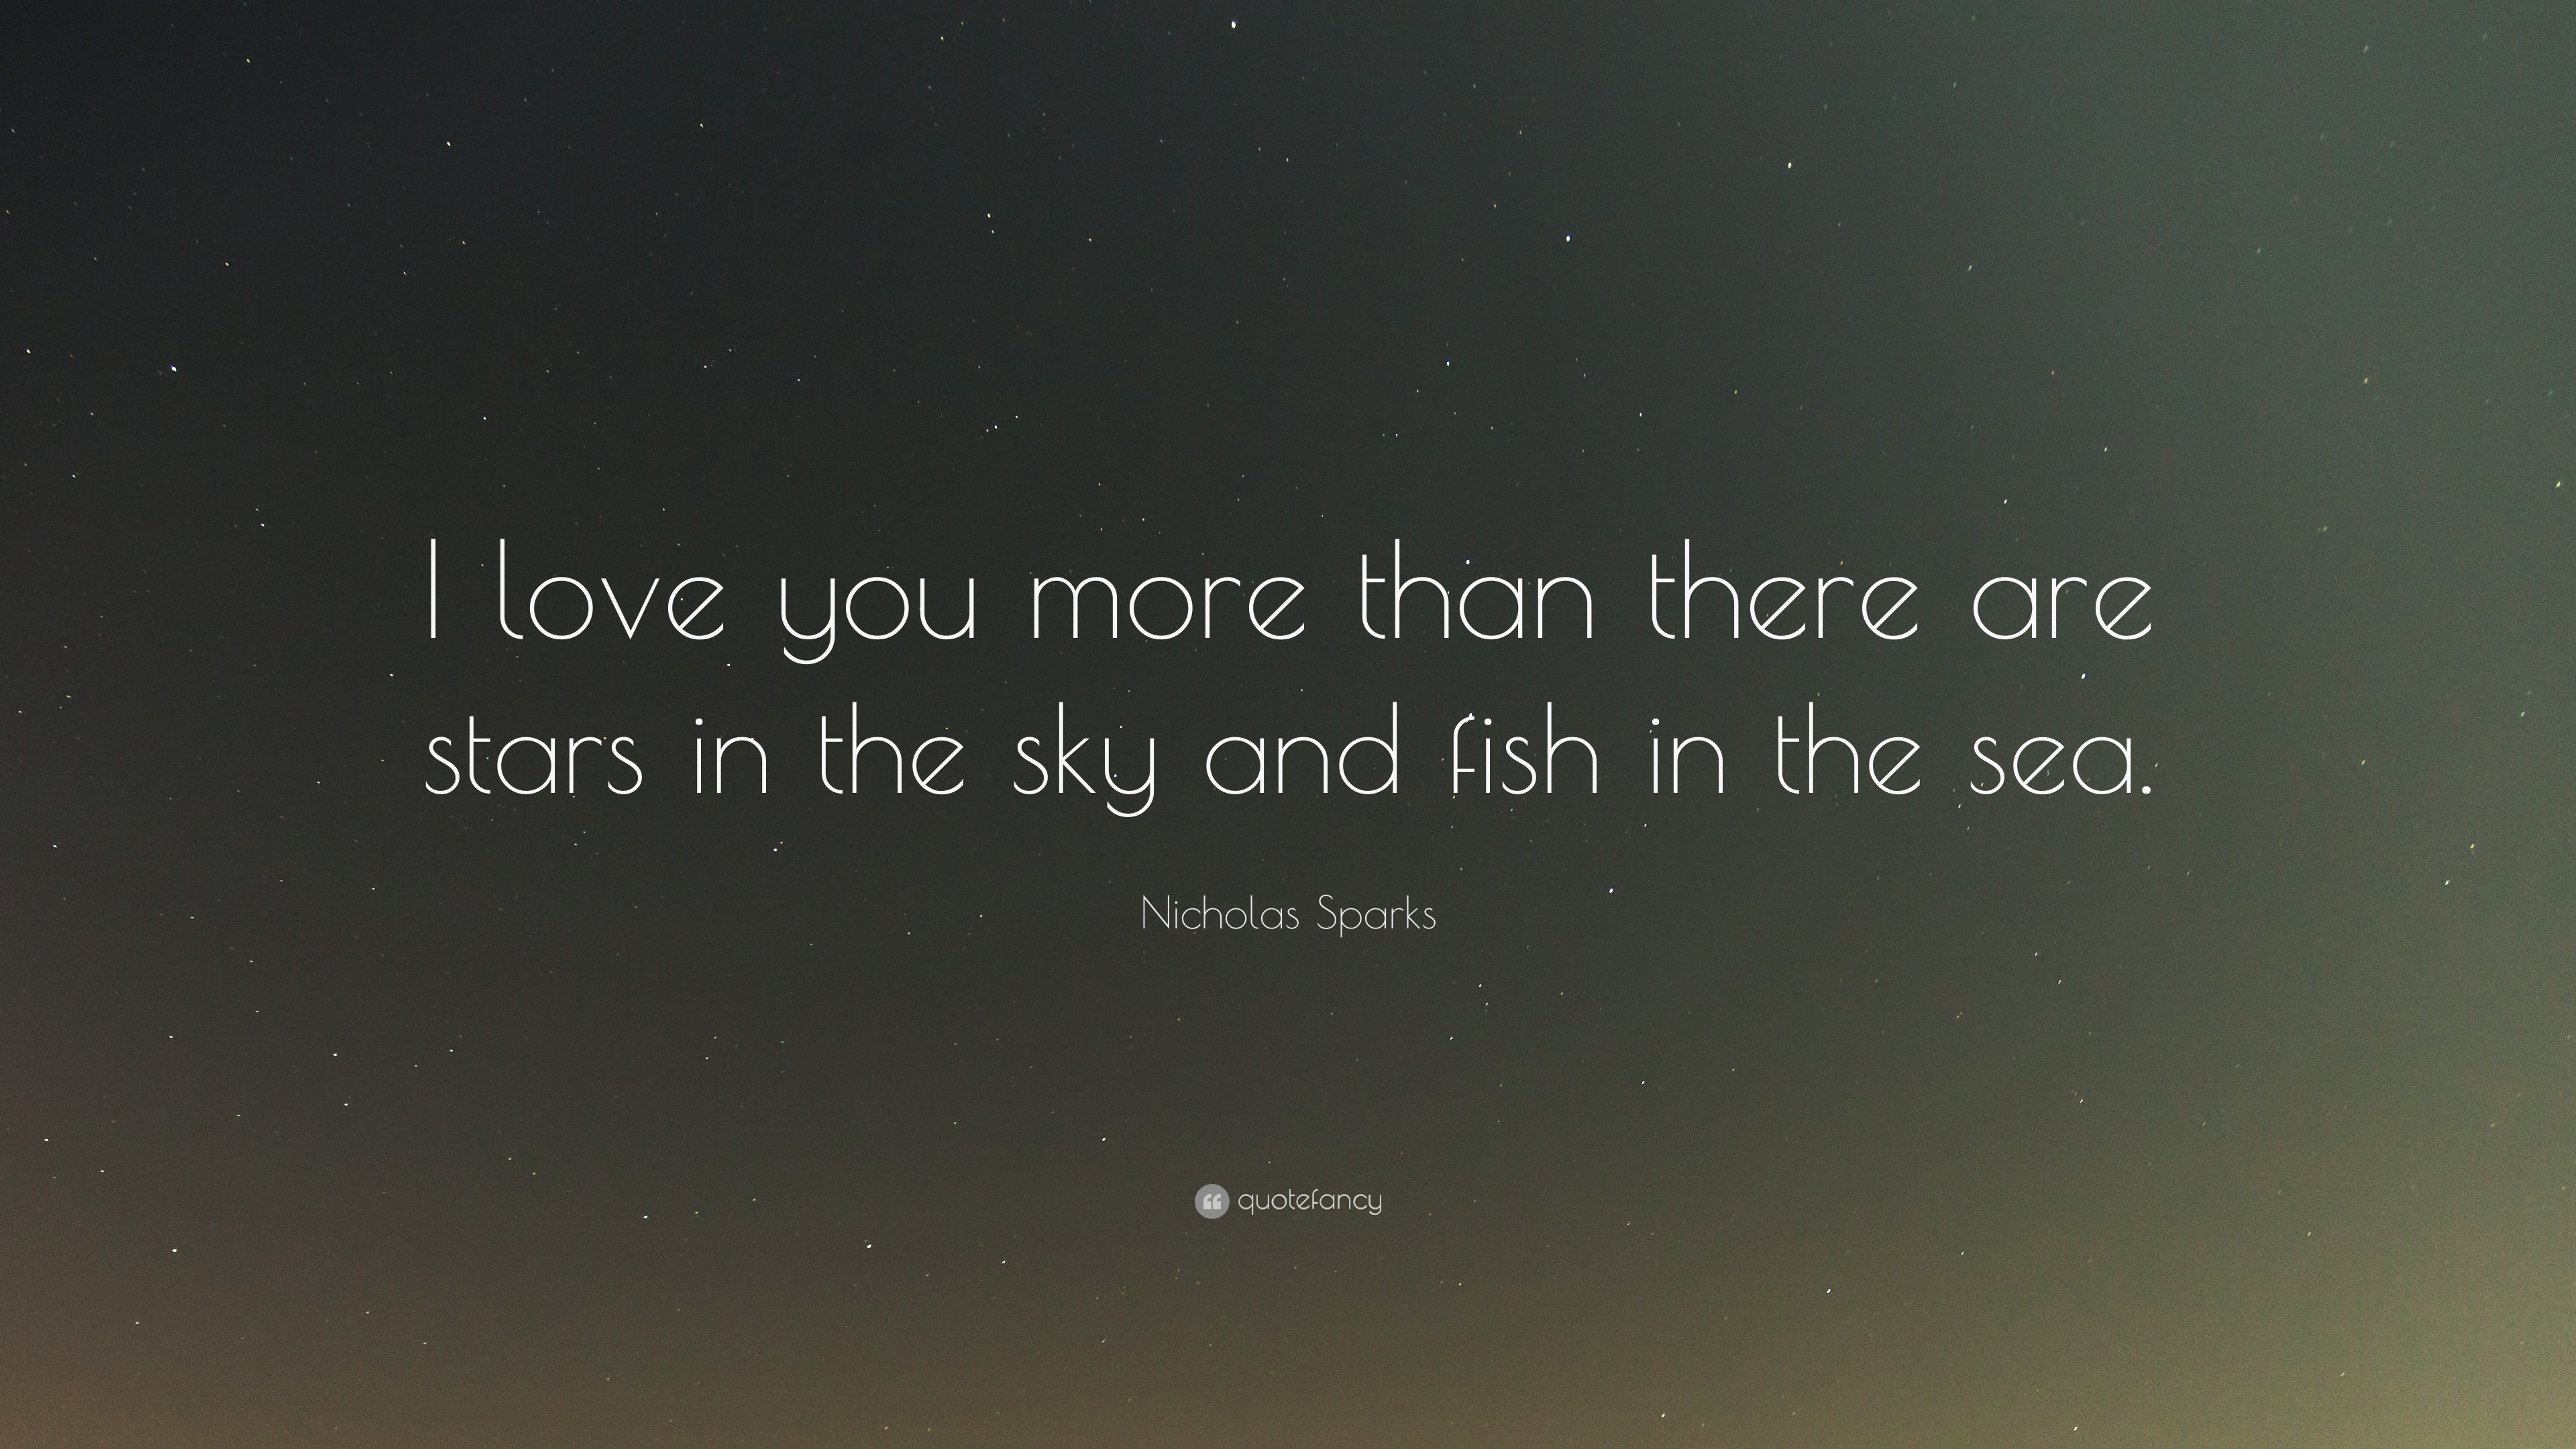 I Love You More Than Life Quotes Tumblr : Nicholas Sparks Quote: ?I love you more than there are stars in the ...